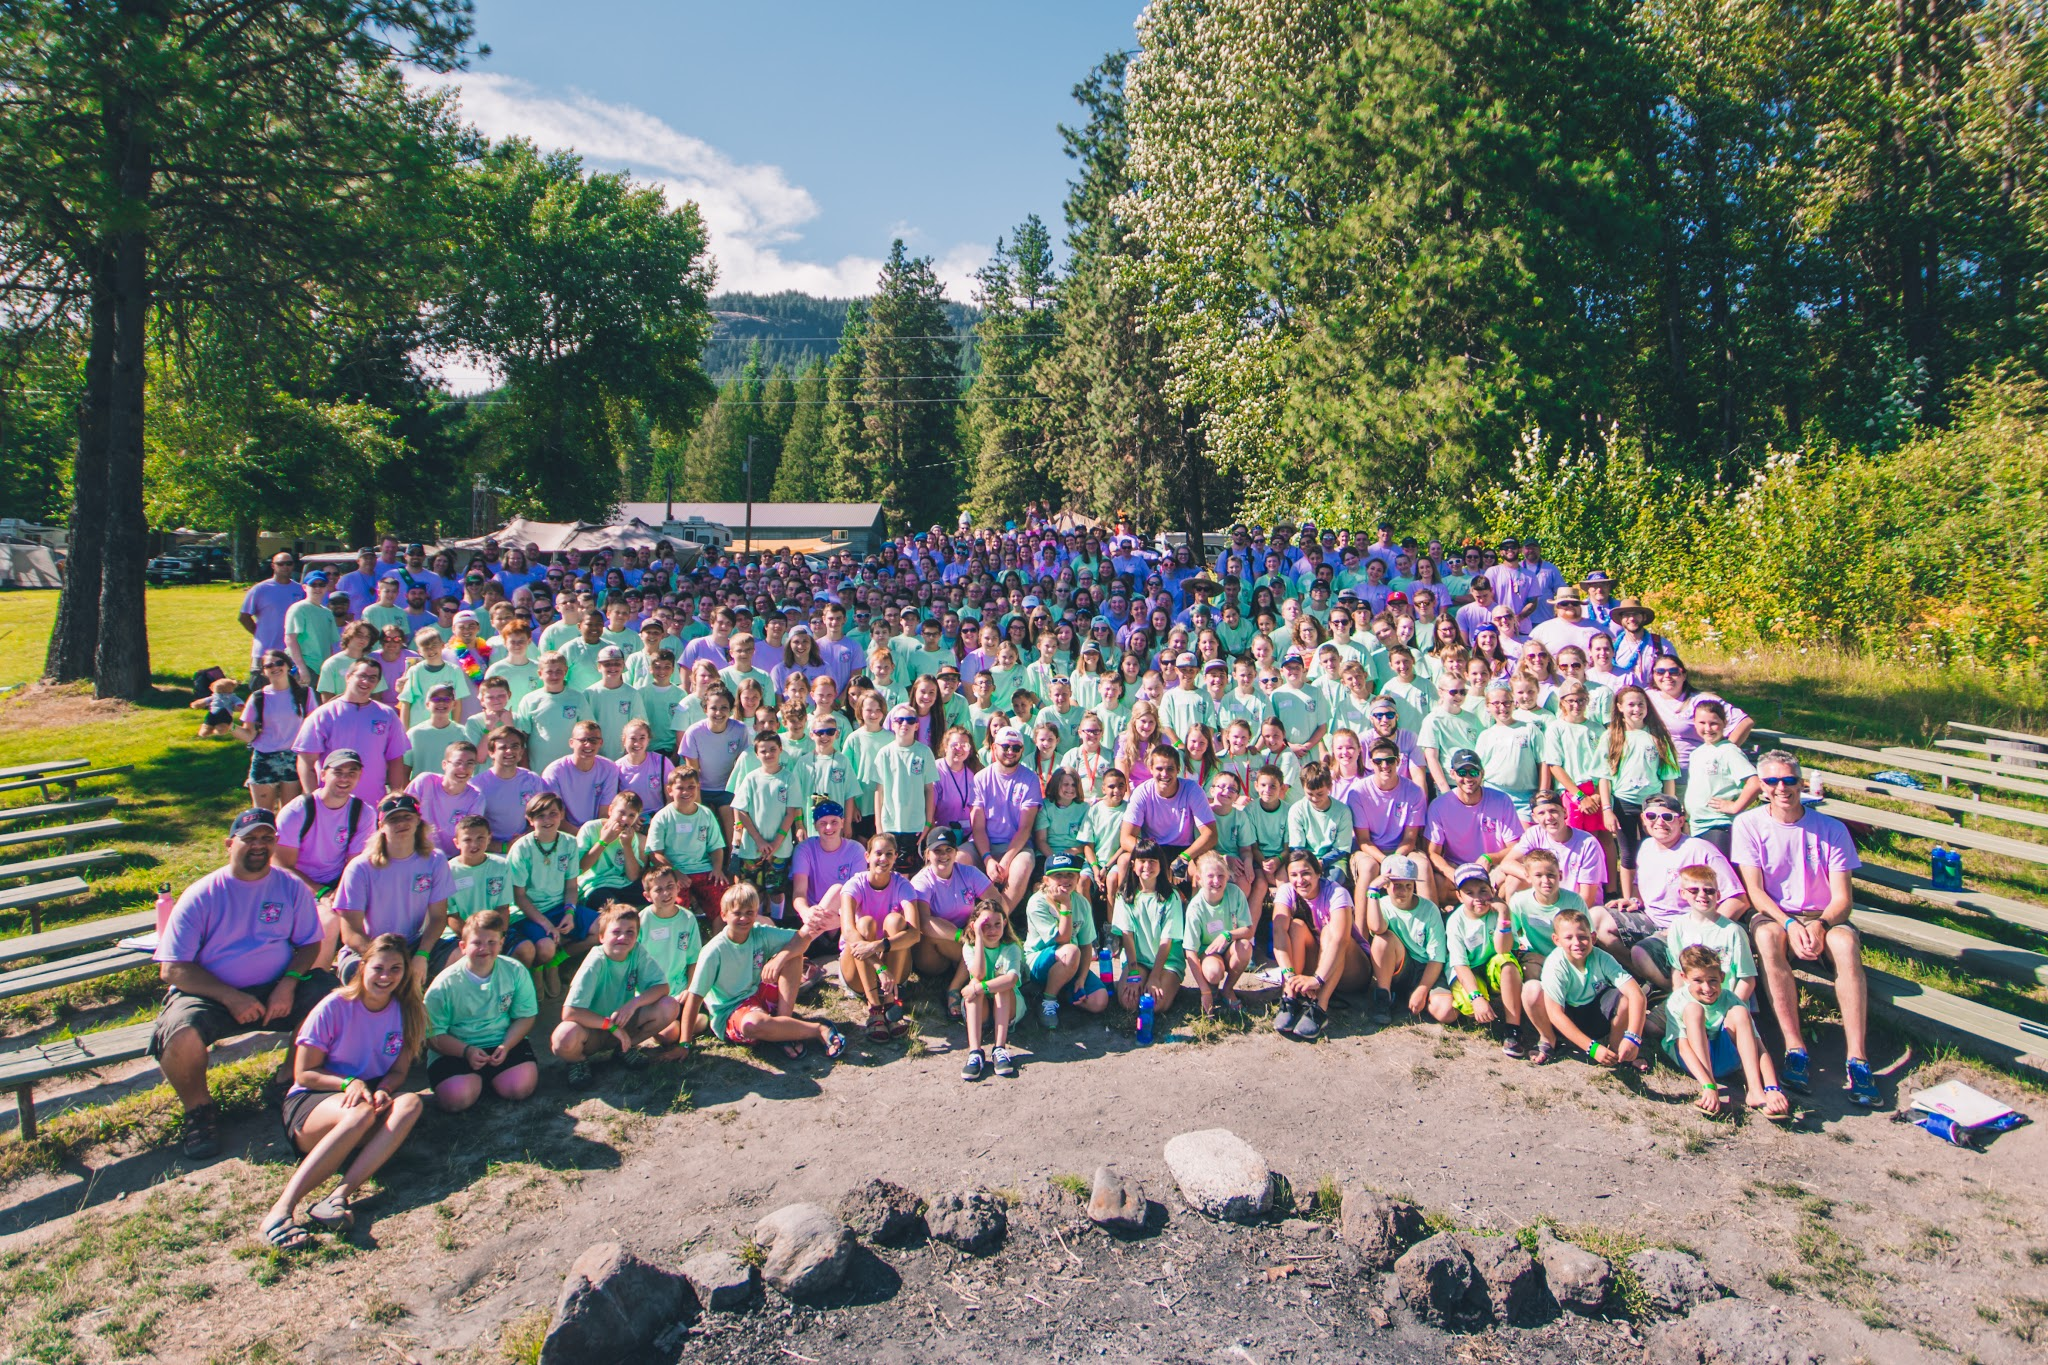 All of our campers and volunteers last year!